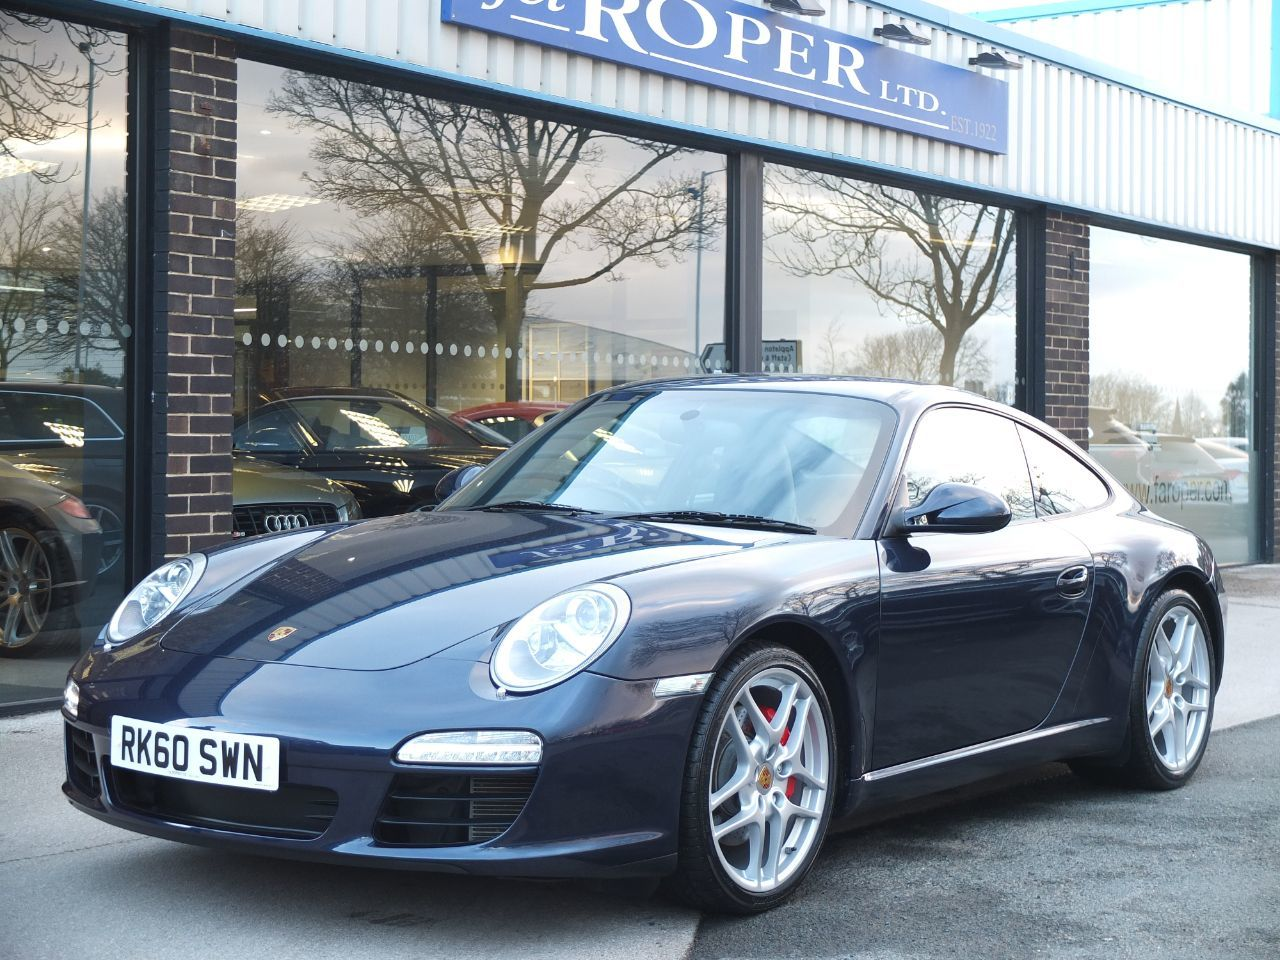 Porsche 911 997 Carrera 3.8 S Gen II +++Spc Coupe Petrol Dark Blue MetallicPorsche 911 997 Carrera 3.8 S Gen II +++Spc Coupe Petrol Dark Blue Metallic at fa Roper Ltd Bradford